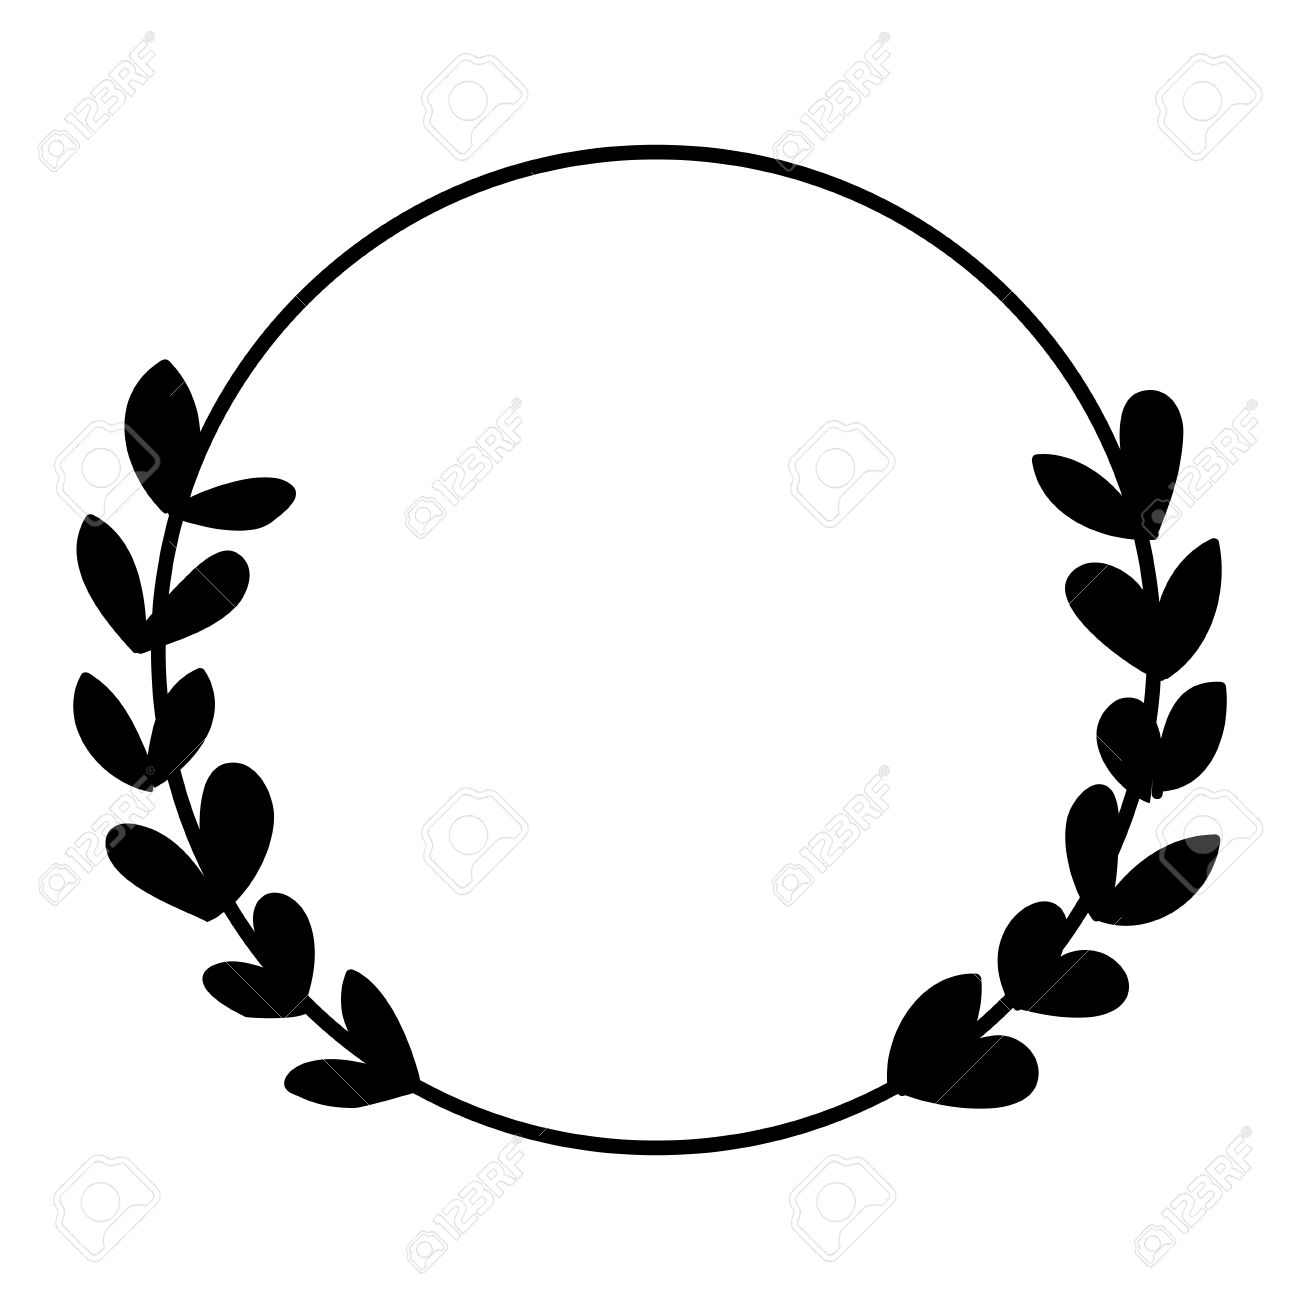 Black and white wreath clipart 7 » Clipart Station.